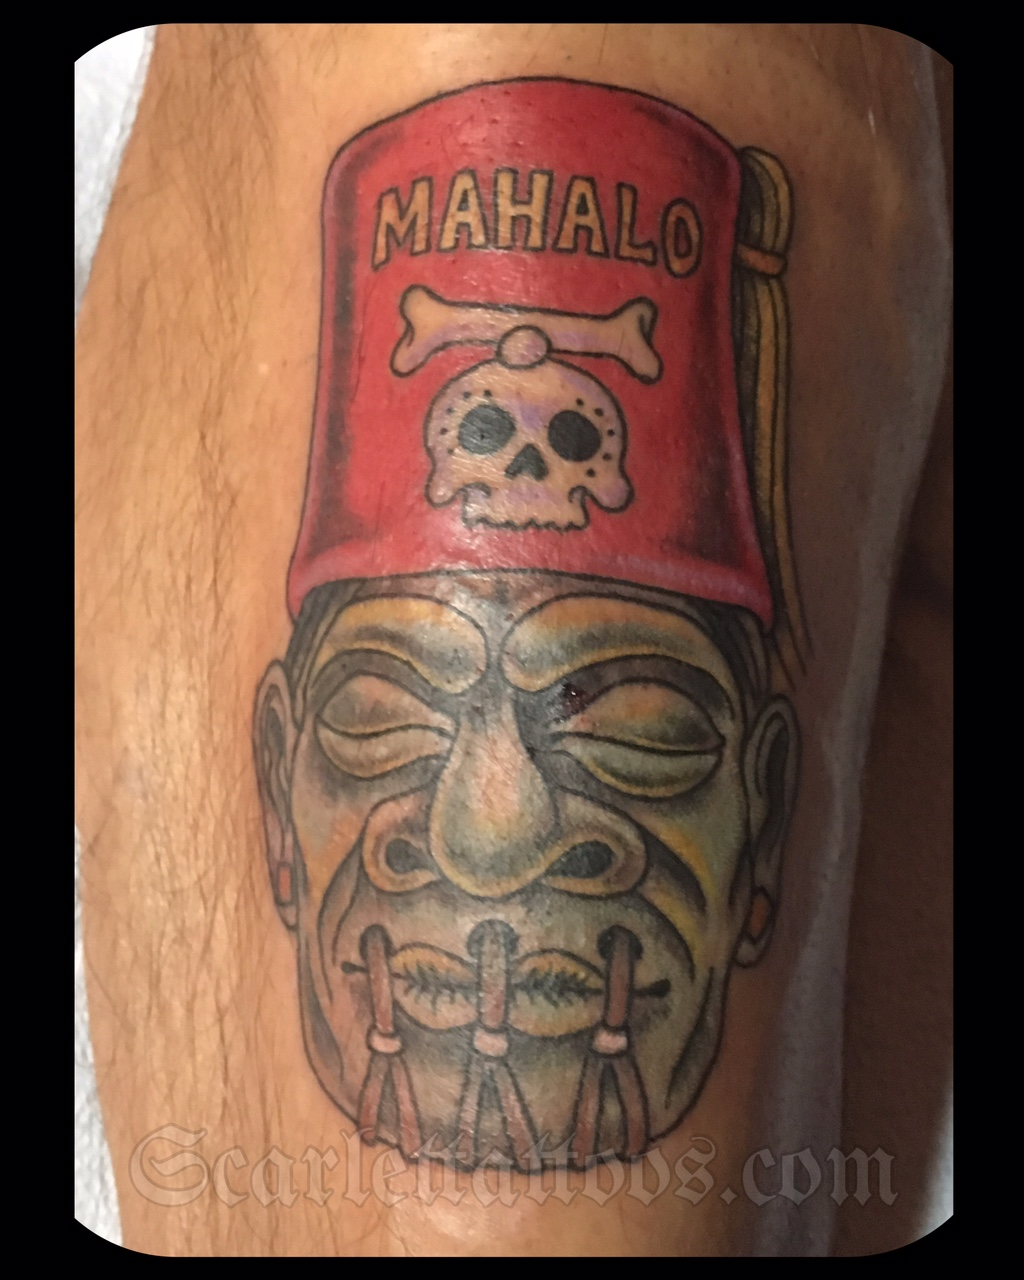 Mahalo Shrunken Head Tiki Tattoo